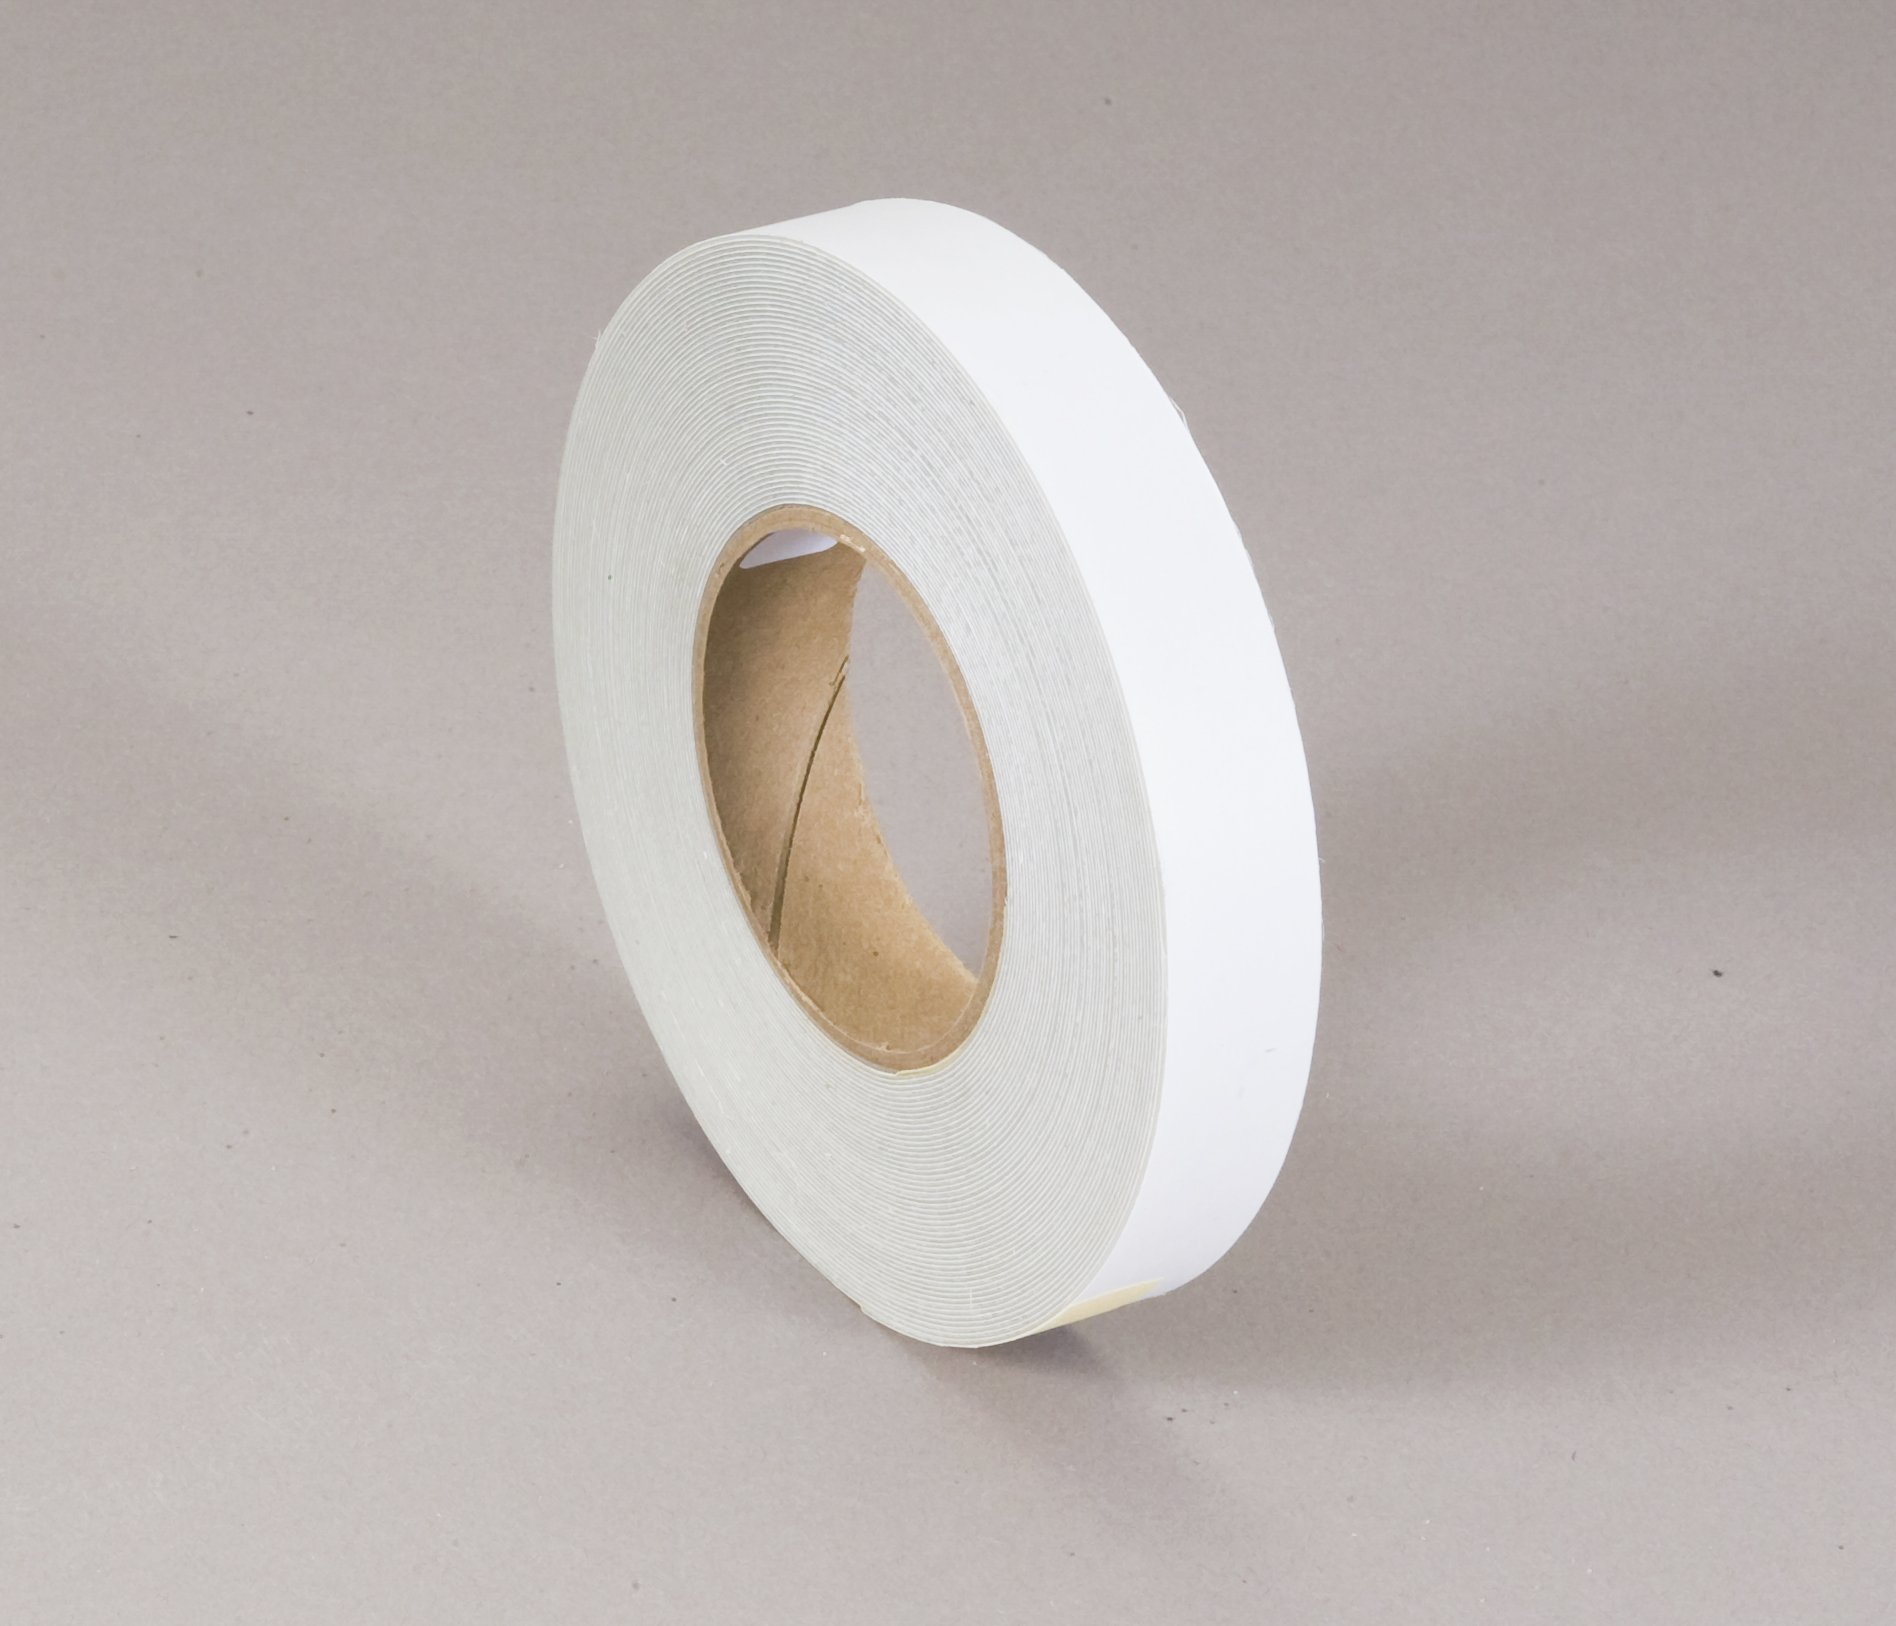 Safe Way Traction 1'' X 60' Foot Roll of CLEAR Rubberized Anti Slip Non Skid Safety Tape 3530-1